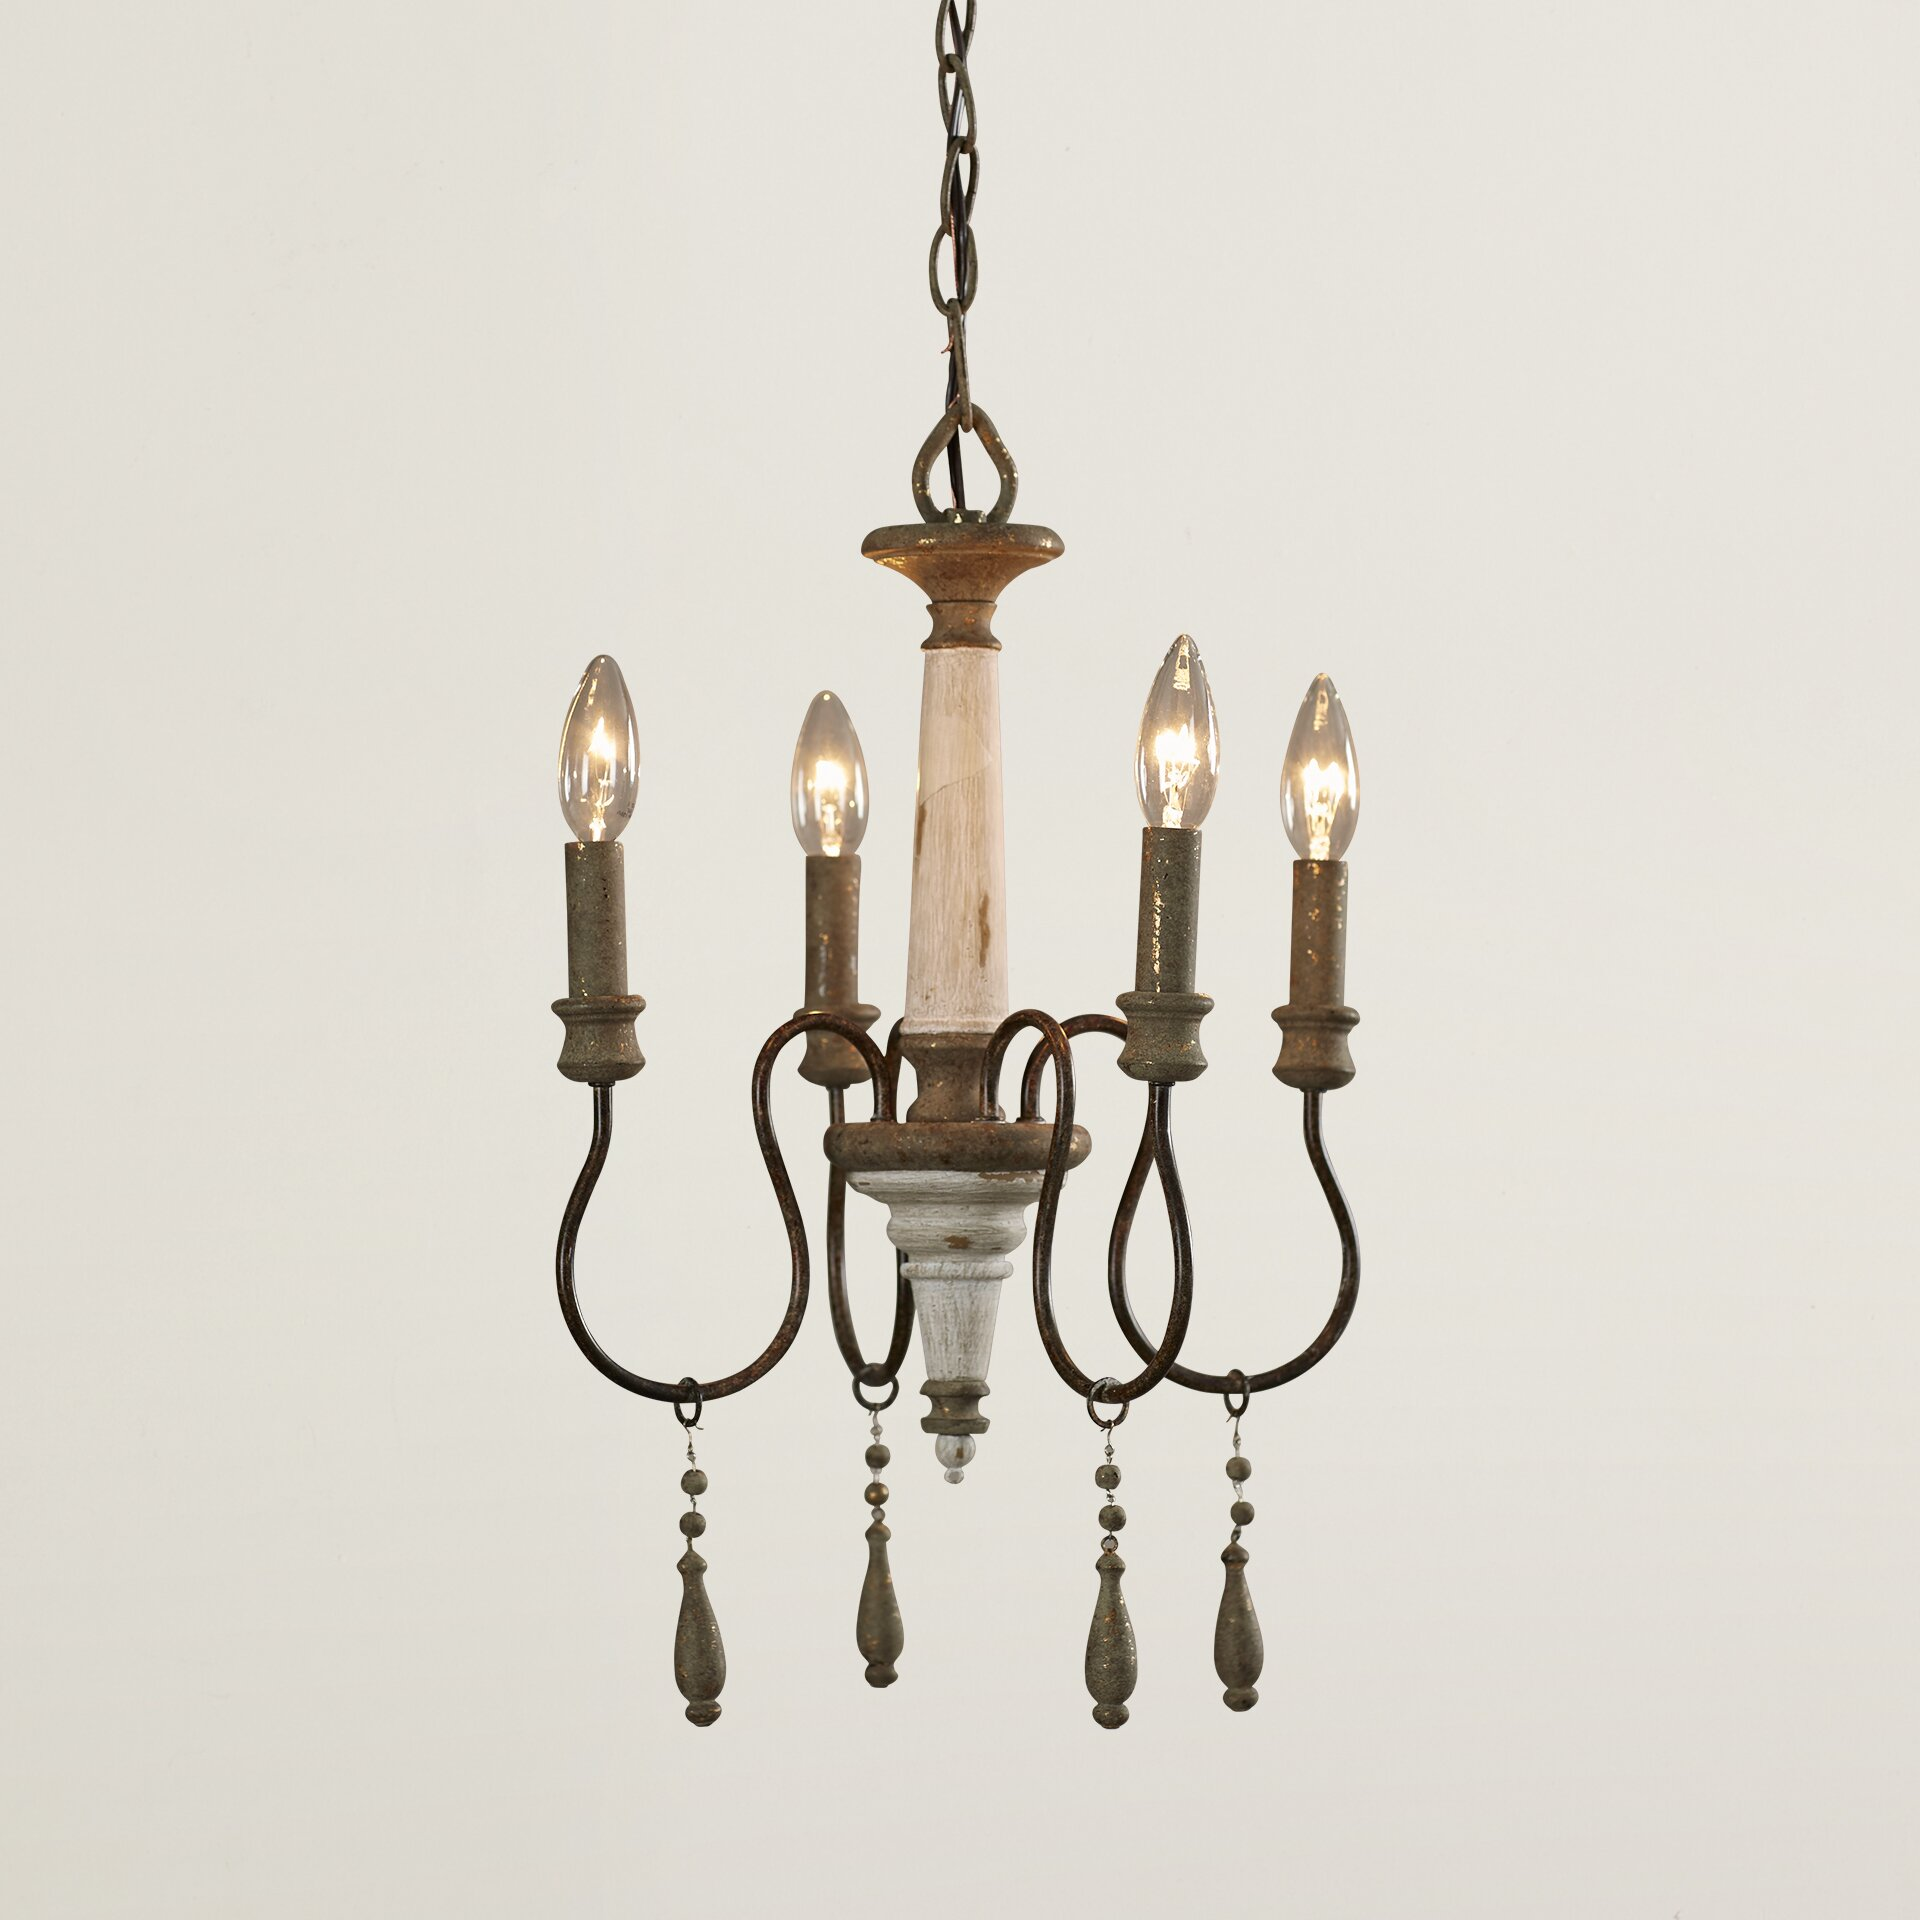 Wayfair Chandelier: Lark Manor Armande Light Candle Chandelier & Reviews